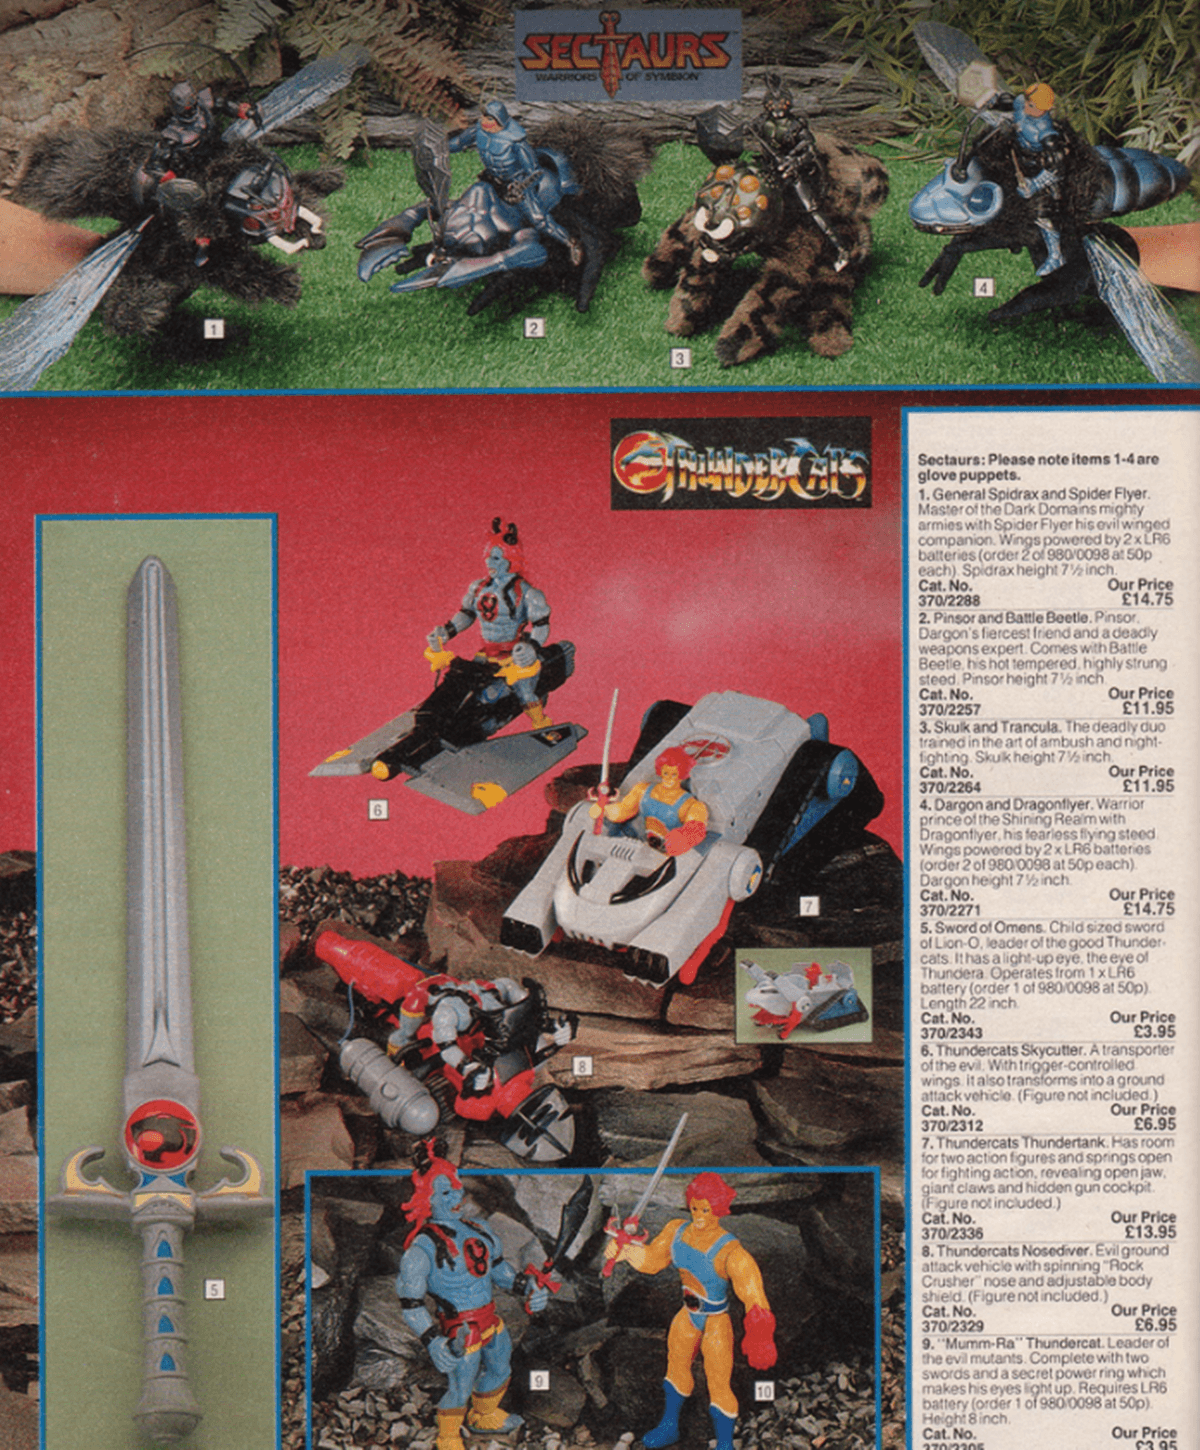 8 1 Take A Look Inside An Argos Catalogue From 1986!